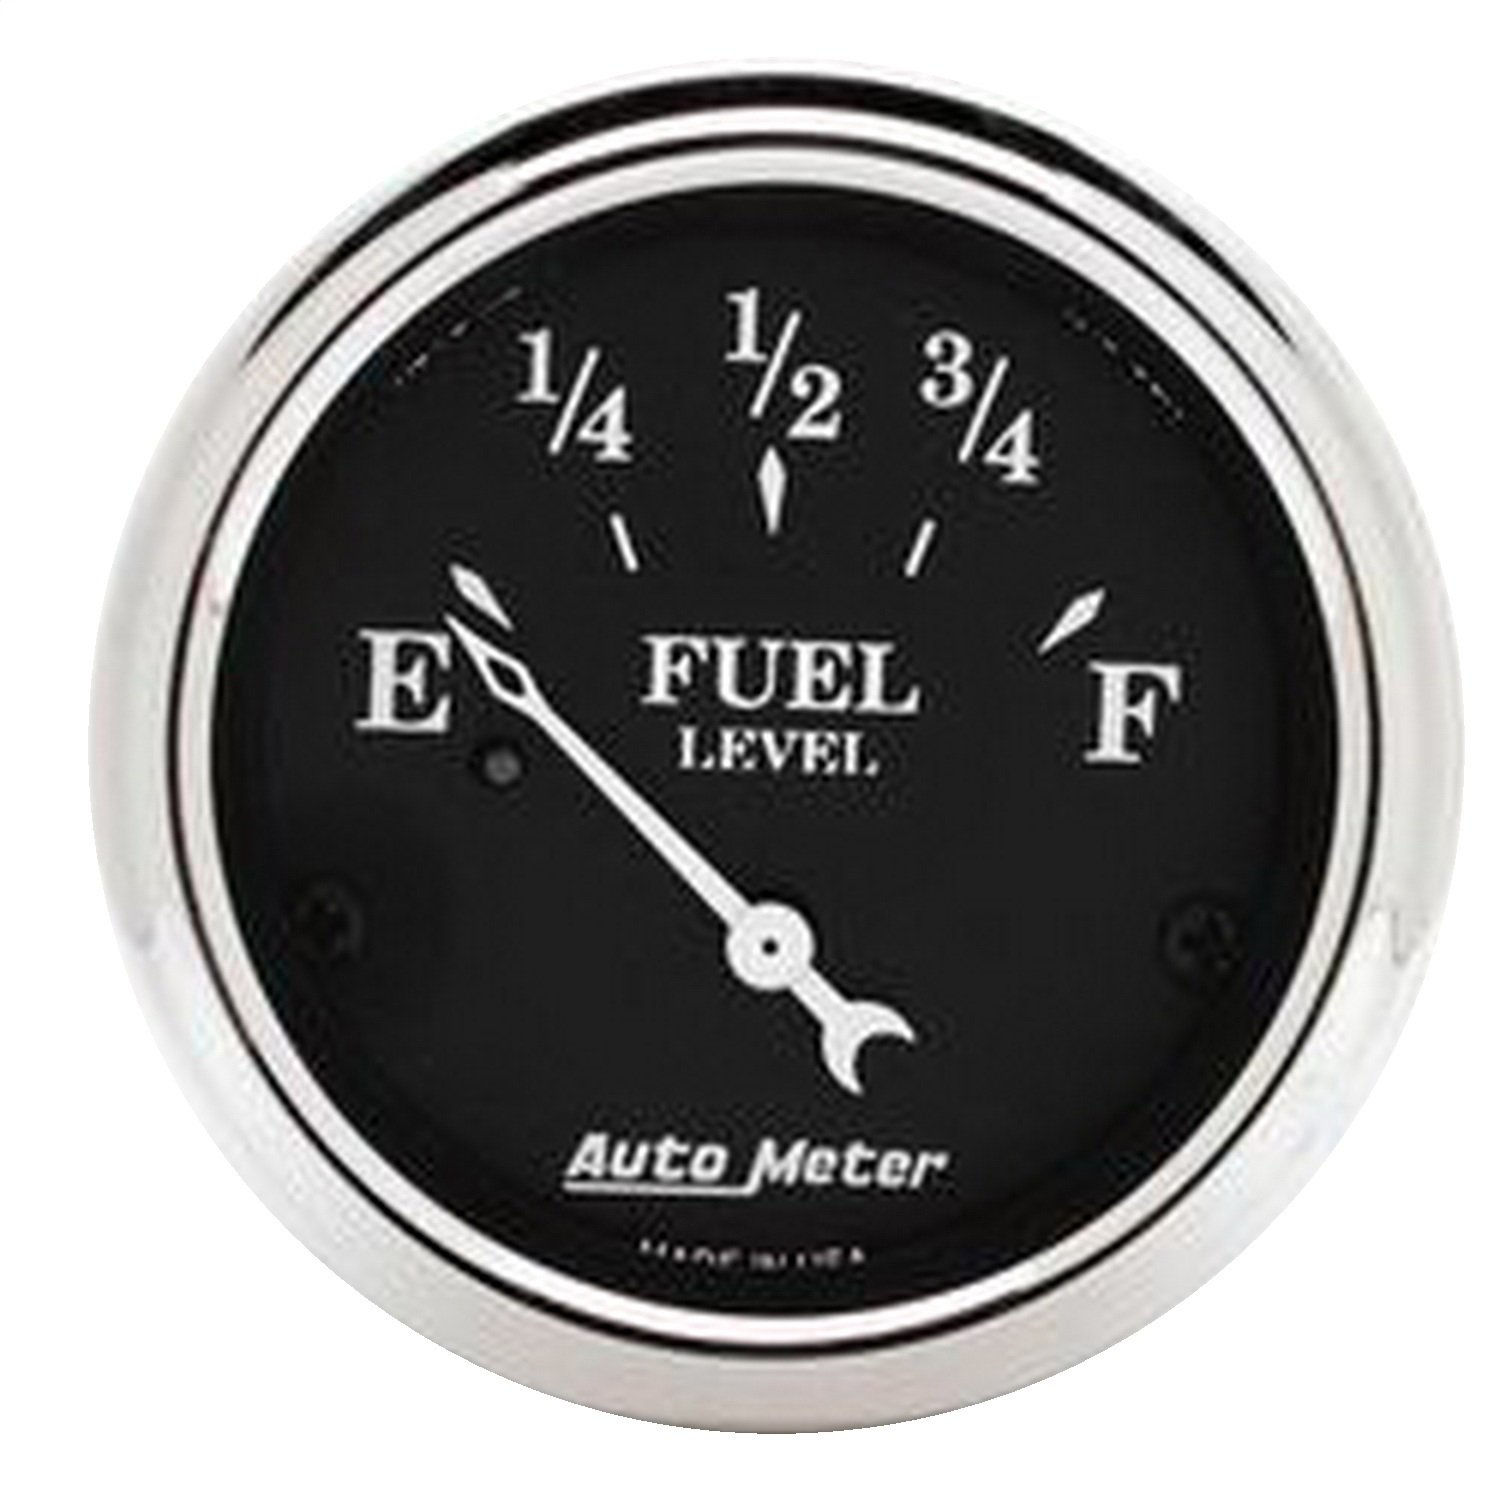 Auto Meter 1718 Old TYME Black Fuel Level Gauge